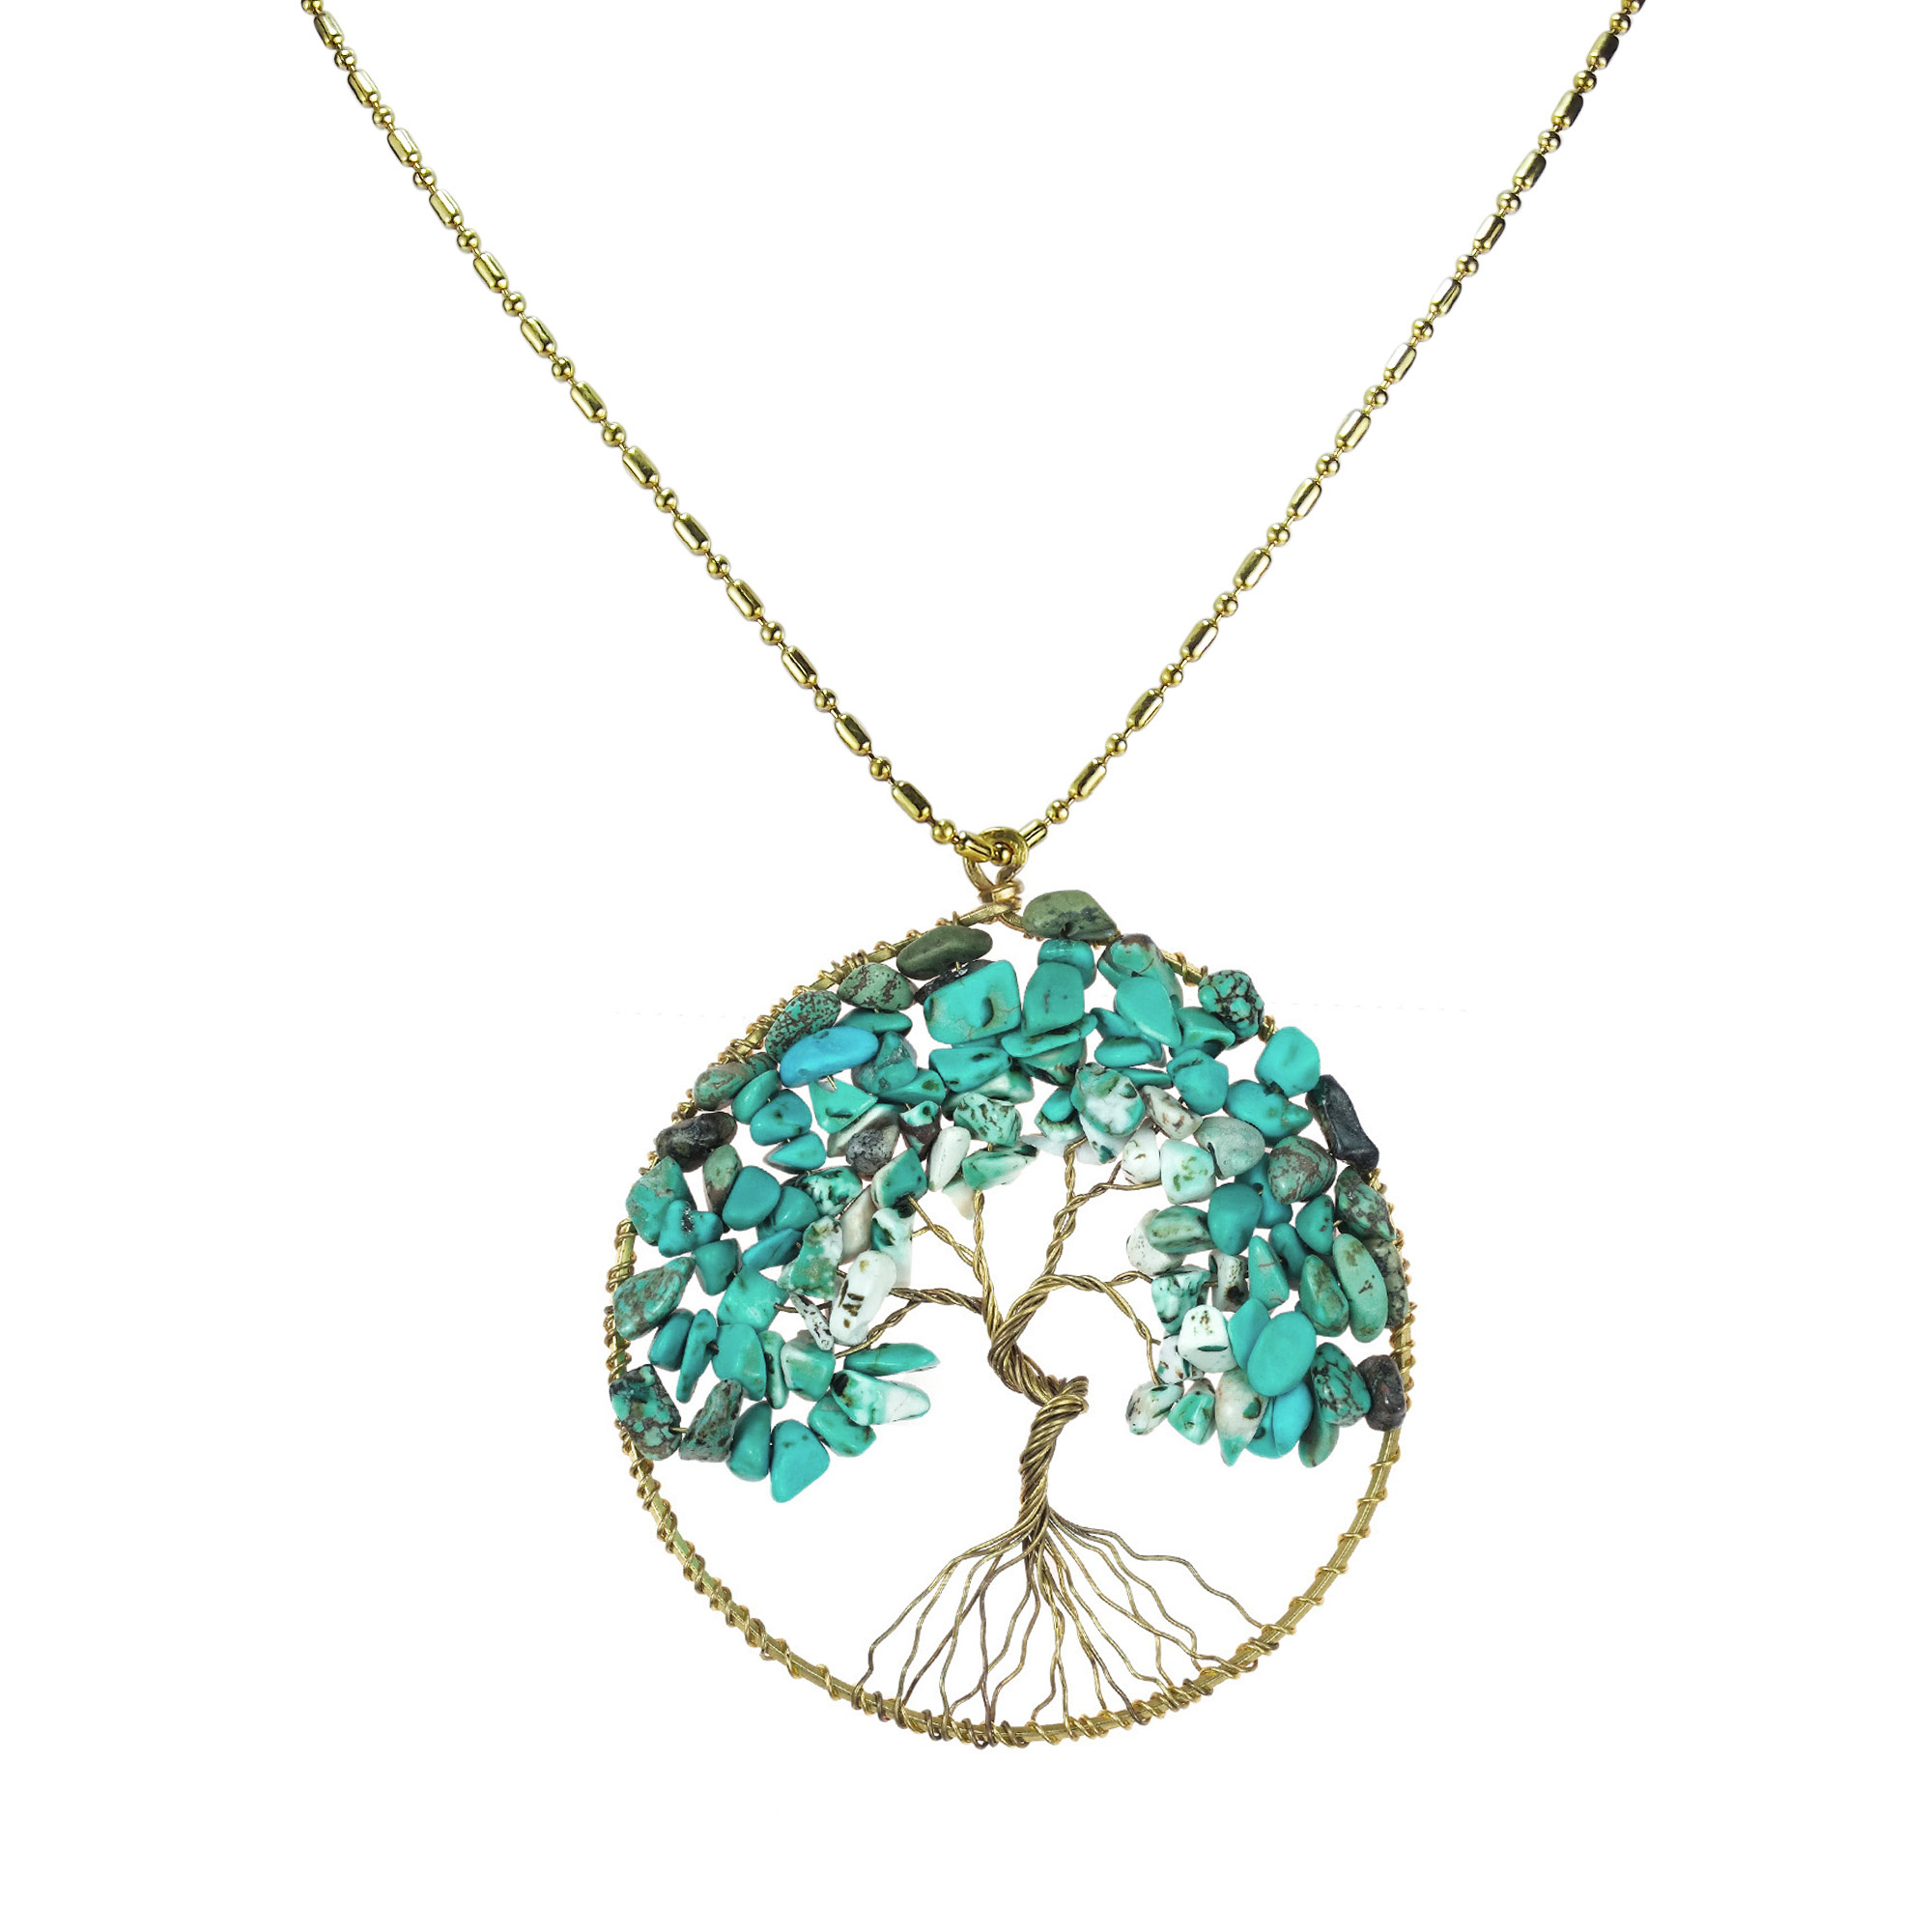 Turquoise stone eternal tree of life brass long necklace for Unique stones for jewelry making